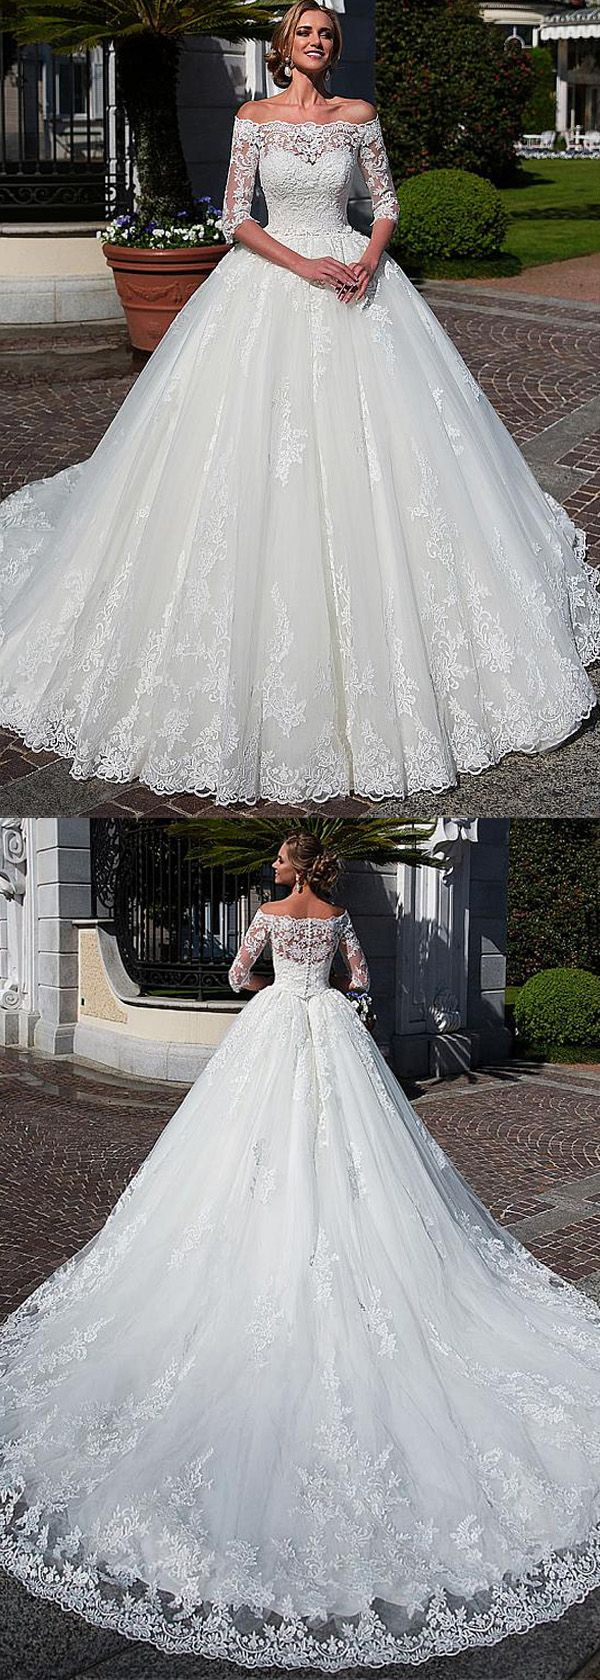 [253.20]  Attractive Tulle Off-the-neck Neckline Ball Gown Wedding Dress with Lace Appliques & Beadings & Detachable Jacket